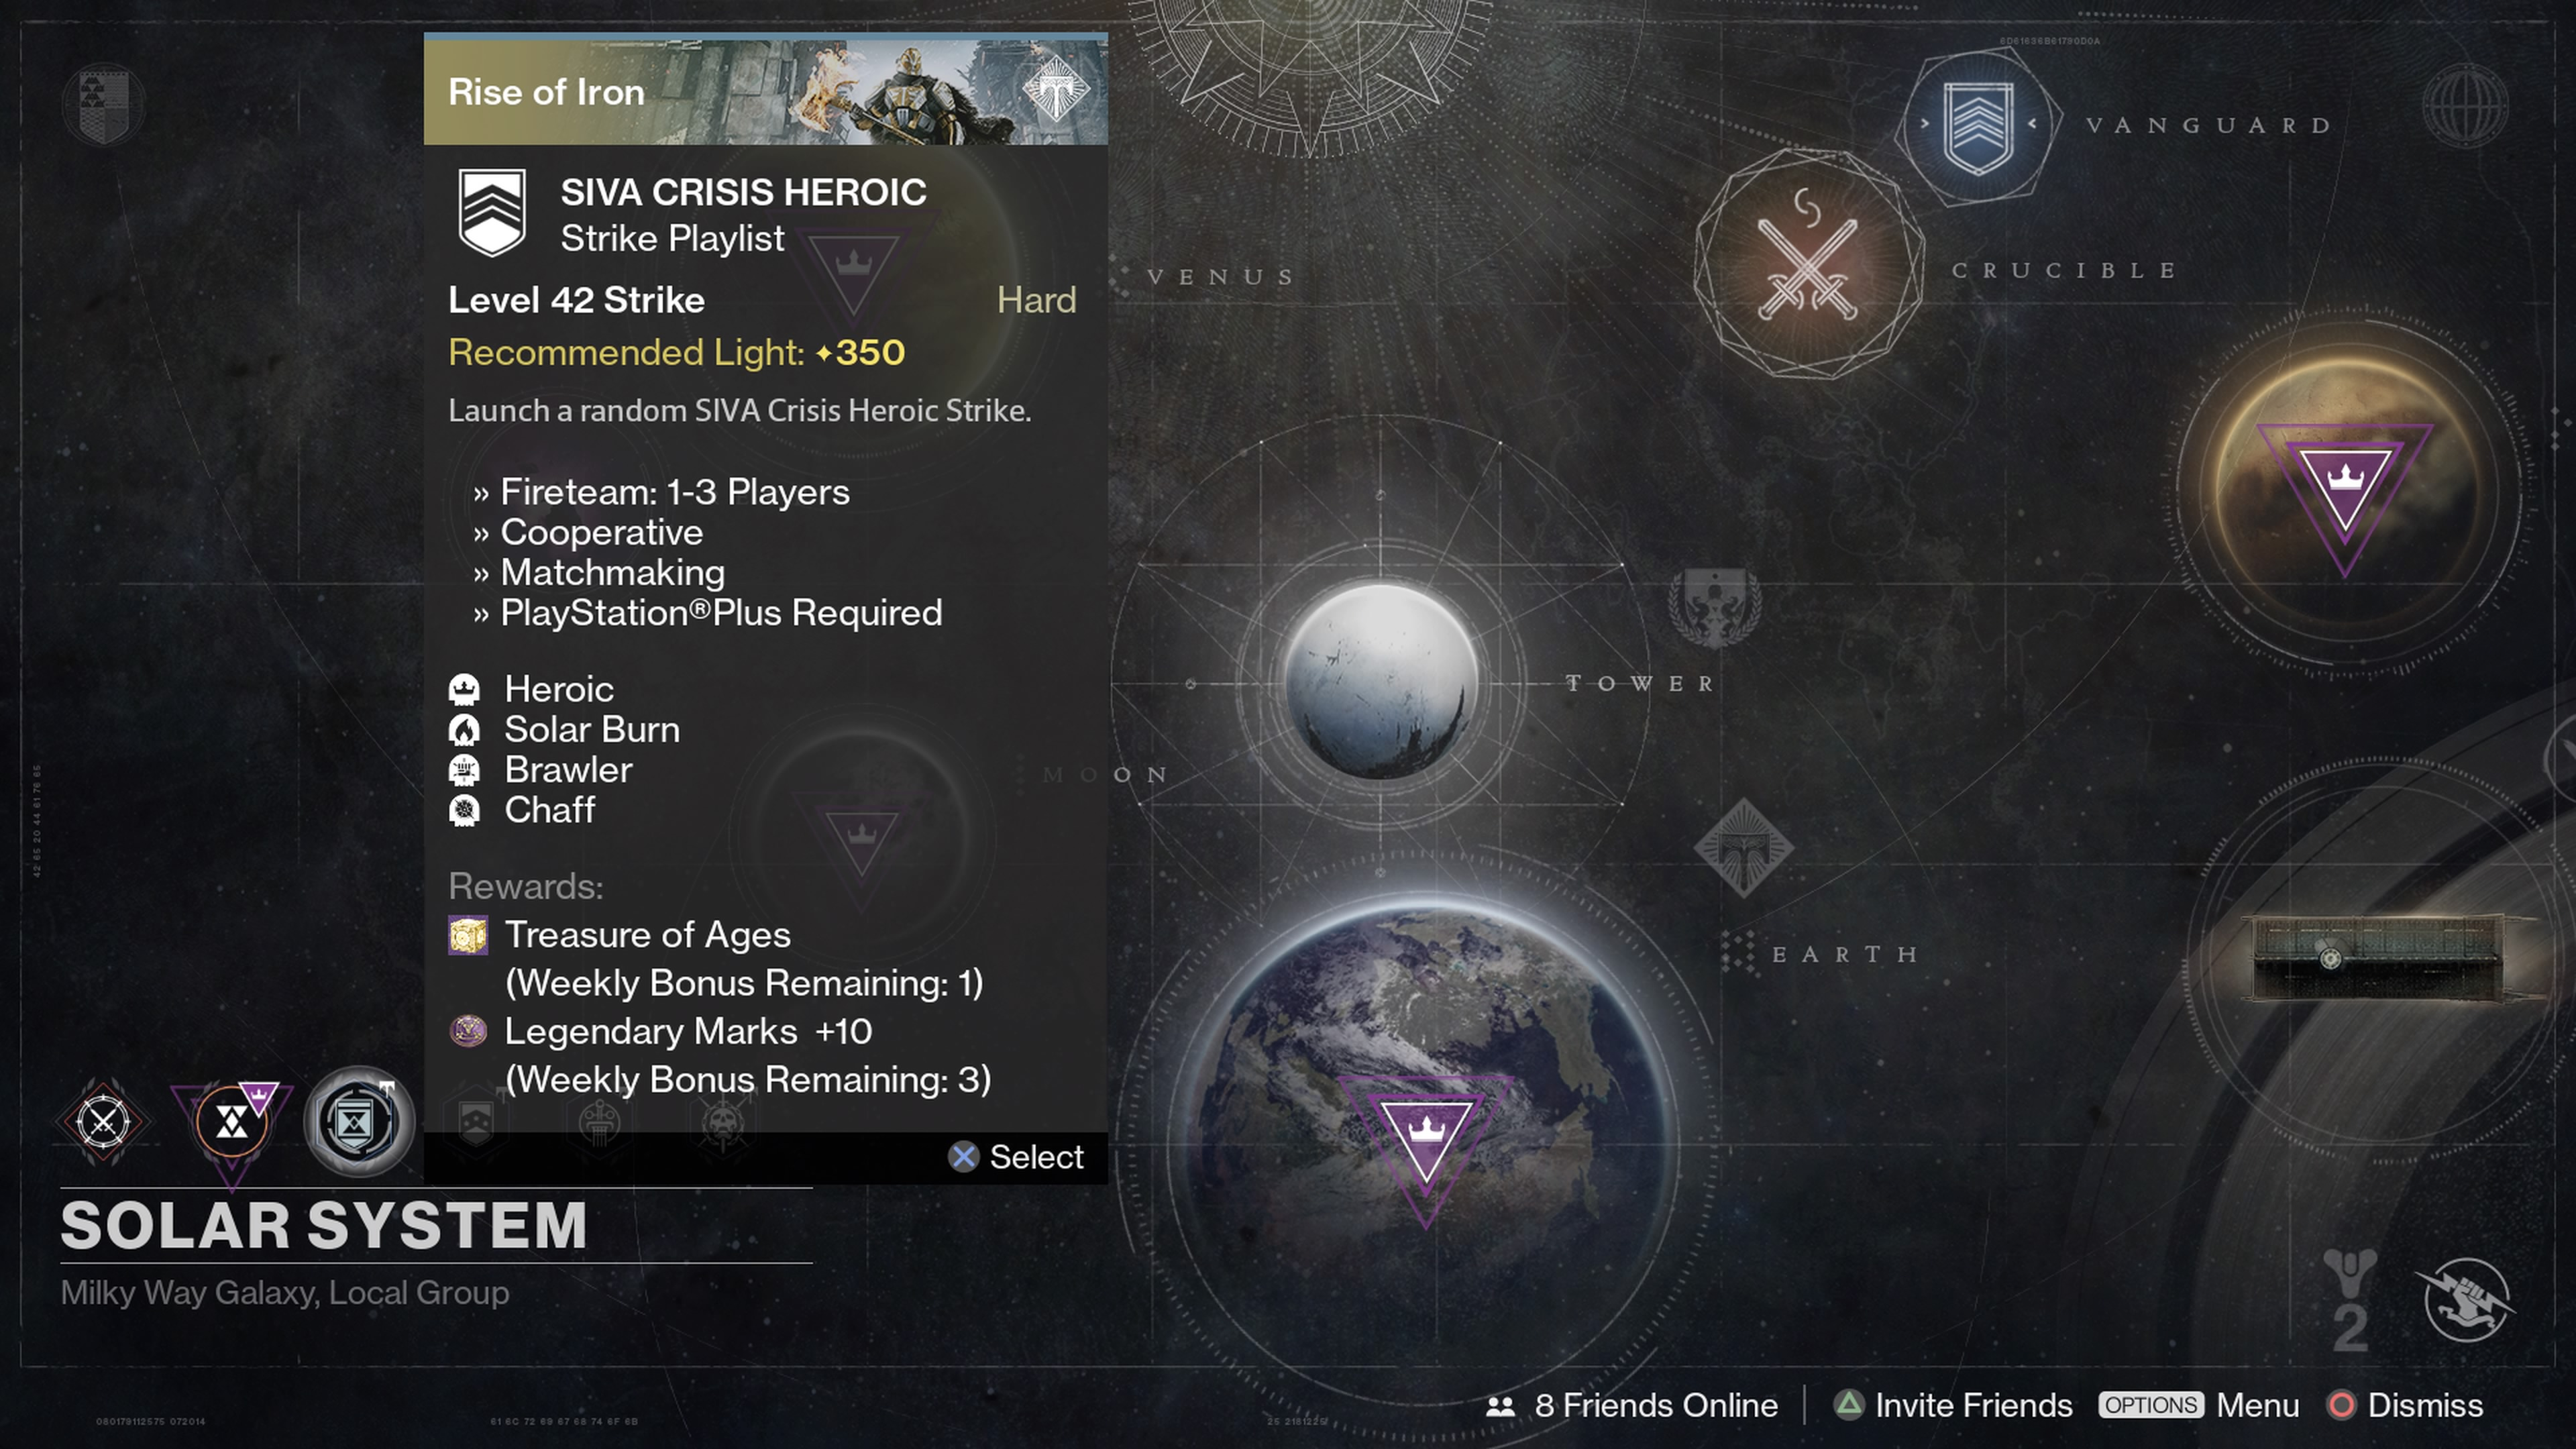 Complete three Strikes from the SIVA Crisis Heroic Strike Playlist